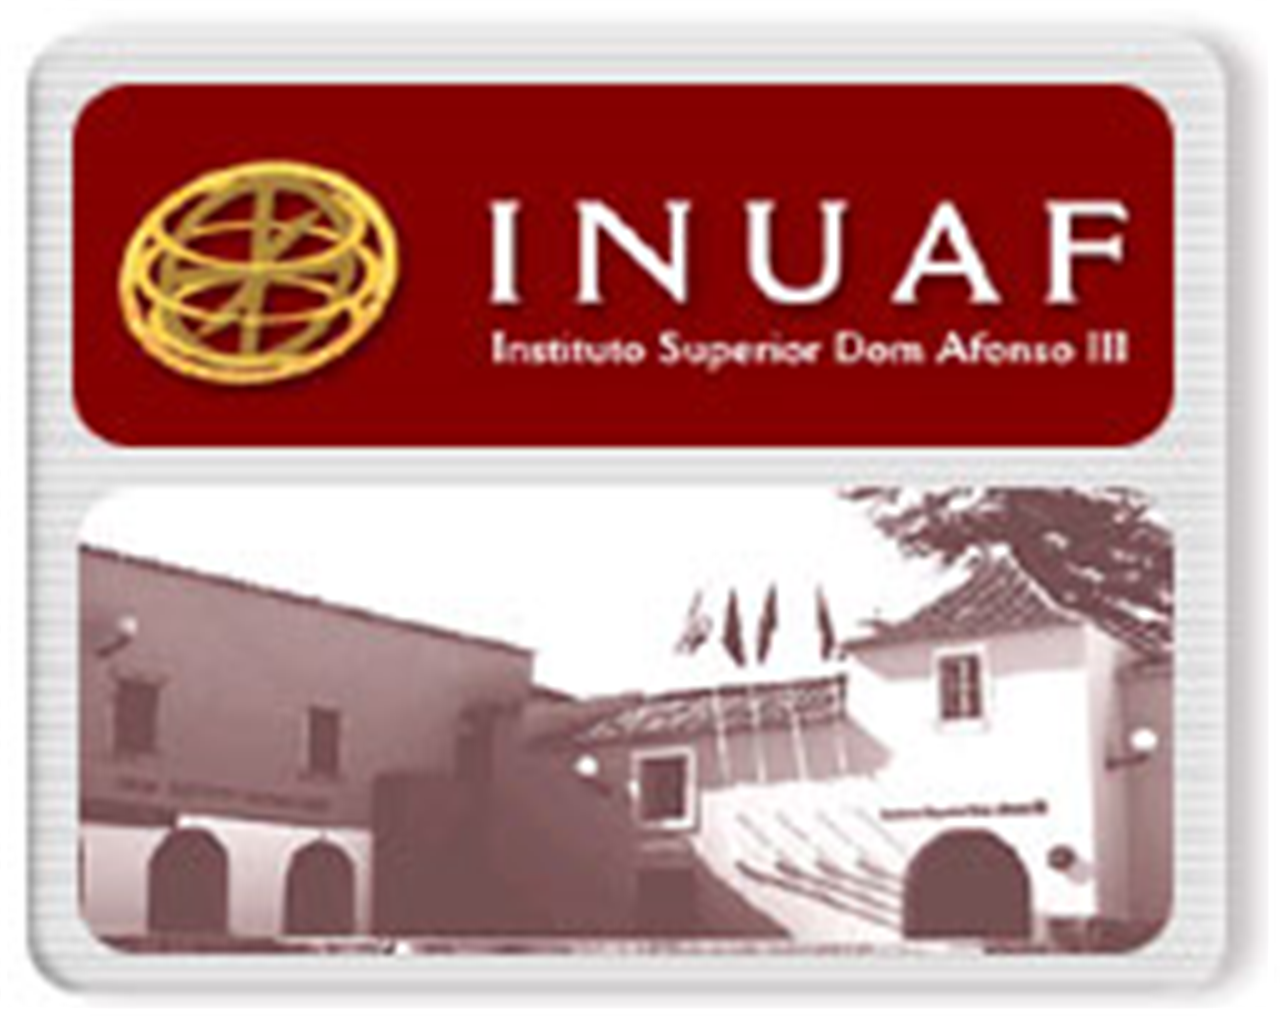 INUAF - Instituto Superior Dom Afonso III